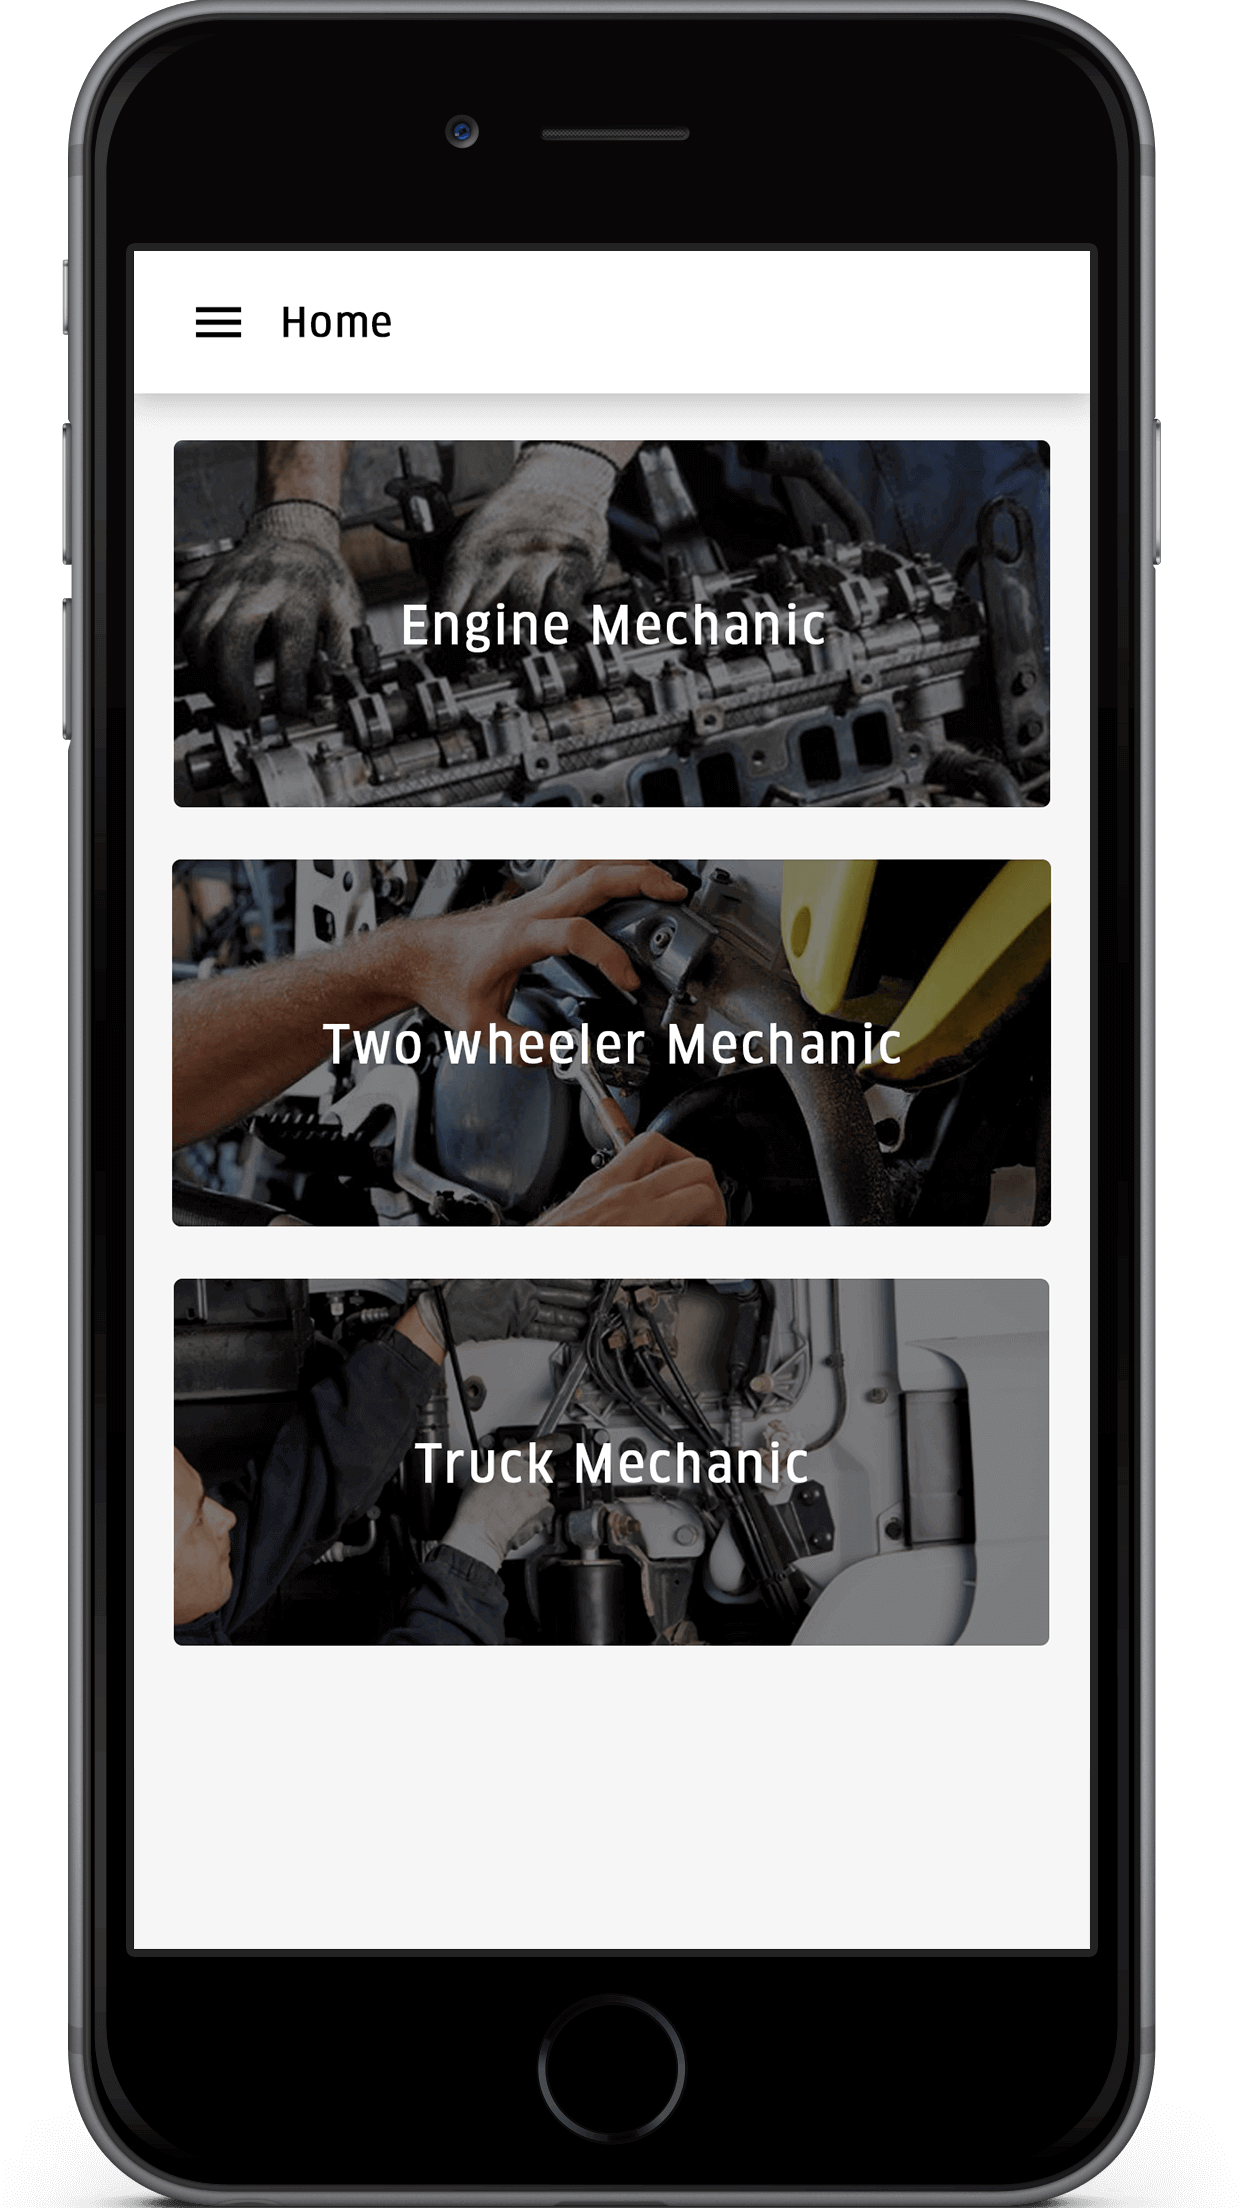 on demand mechanics services app